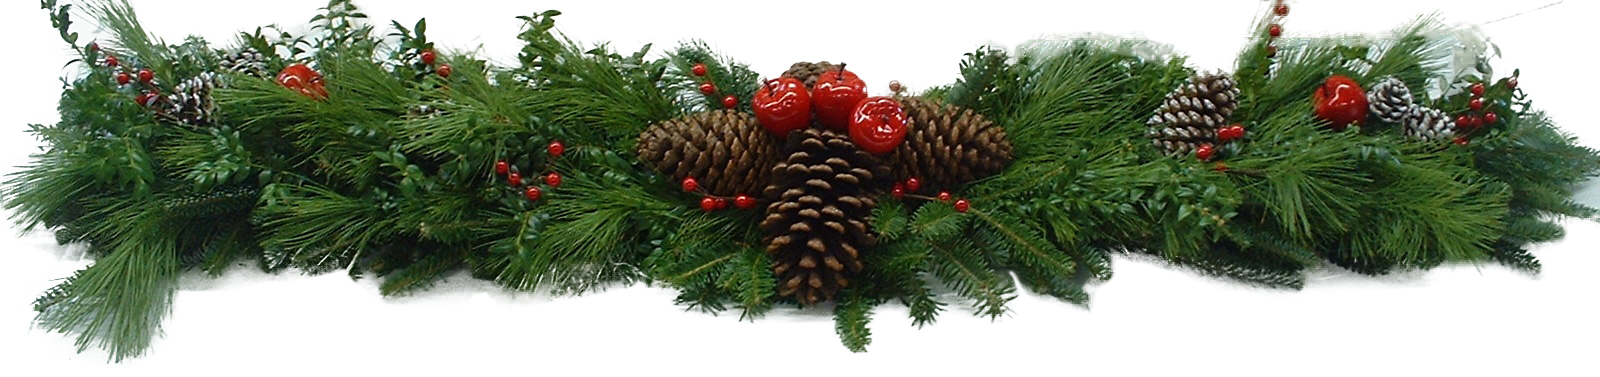 calling all christmas decorating elves just north ucc - Christmas Greens